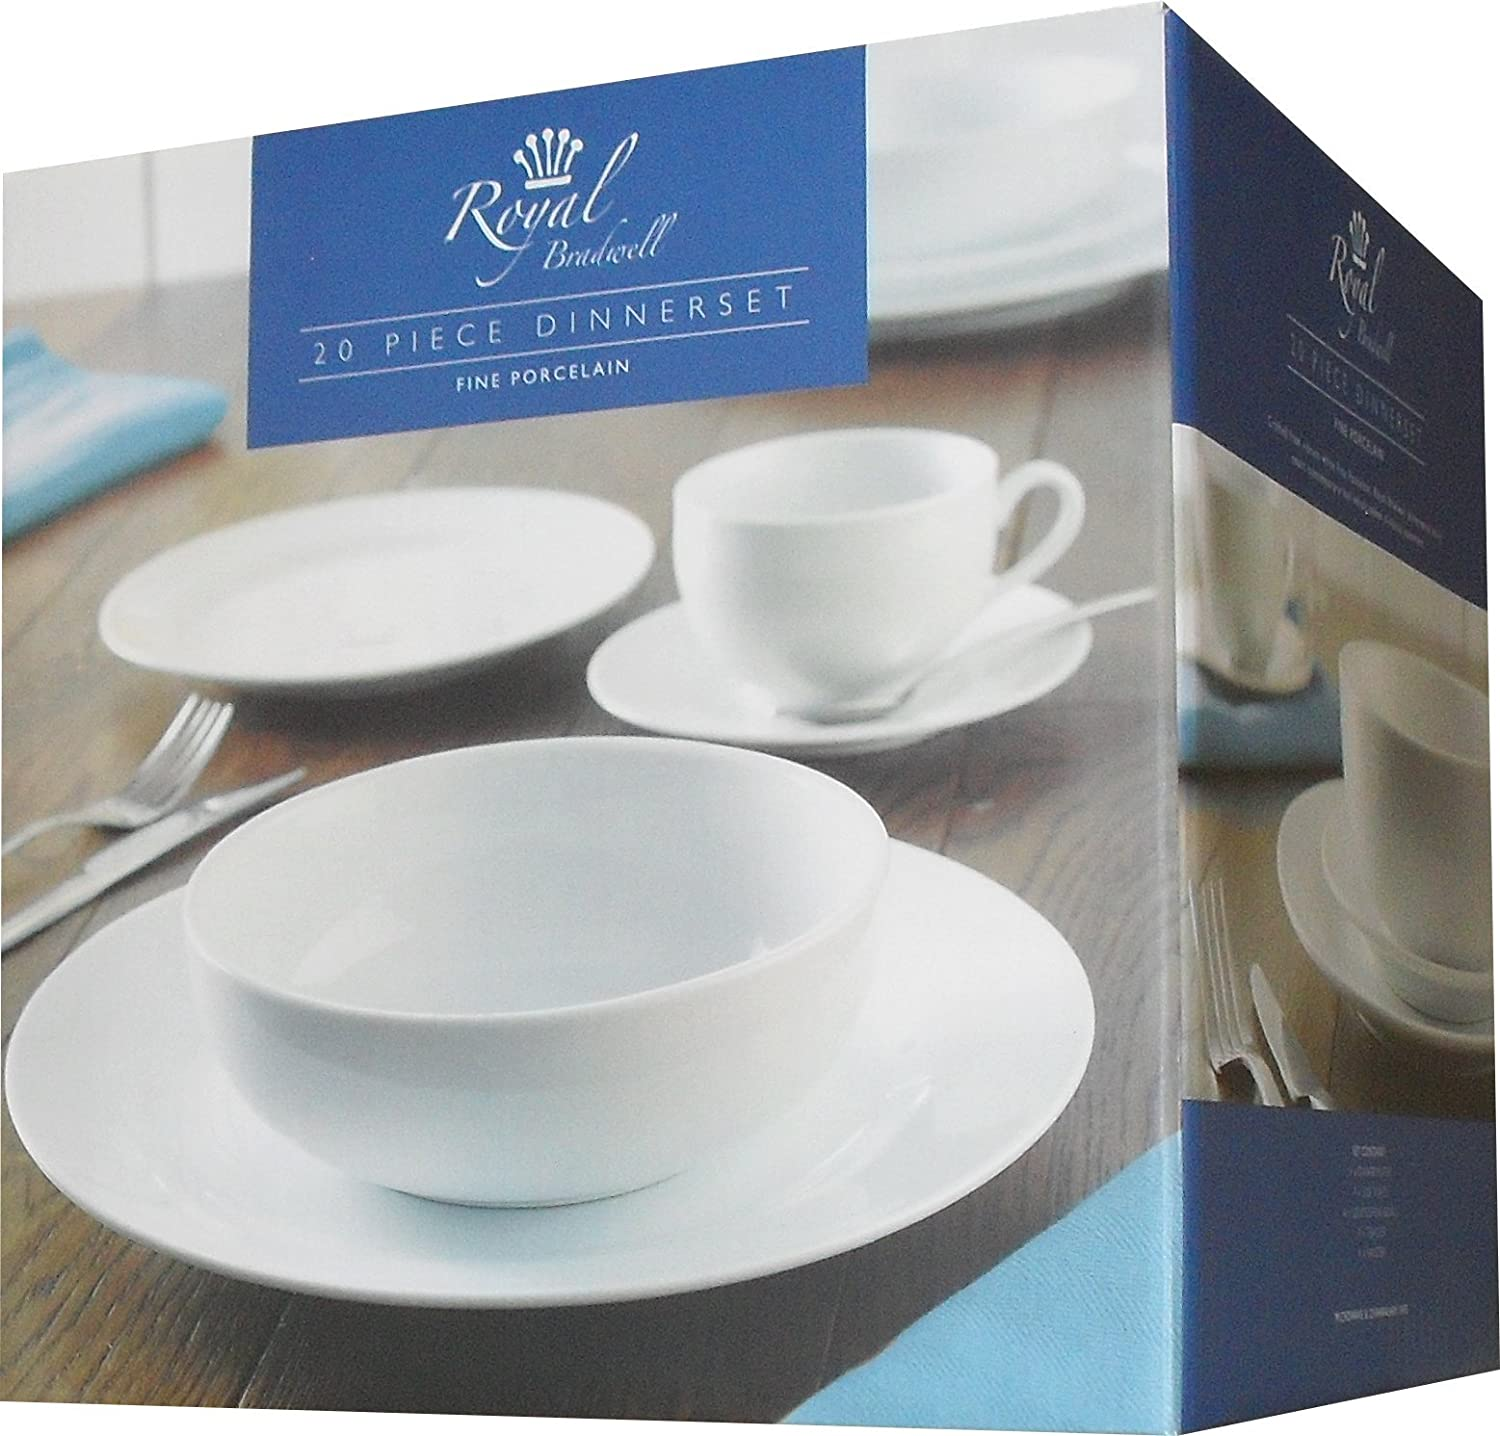 Rayware 20 Piece Royal Bradwell Dinner Service, White: Amazon.co.uk:  Kitchen U0026 Home